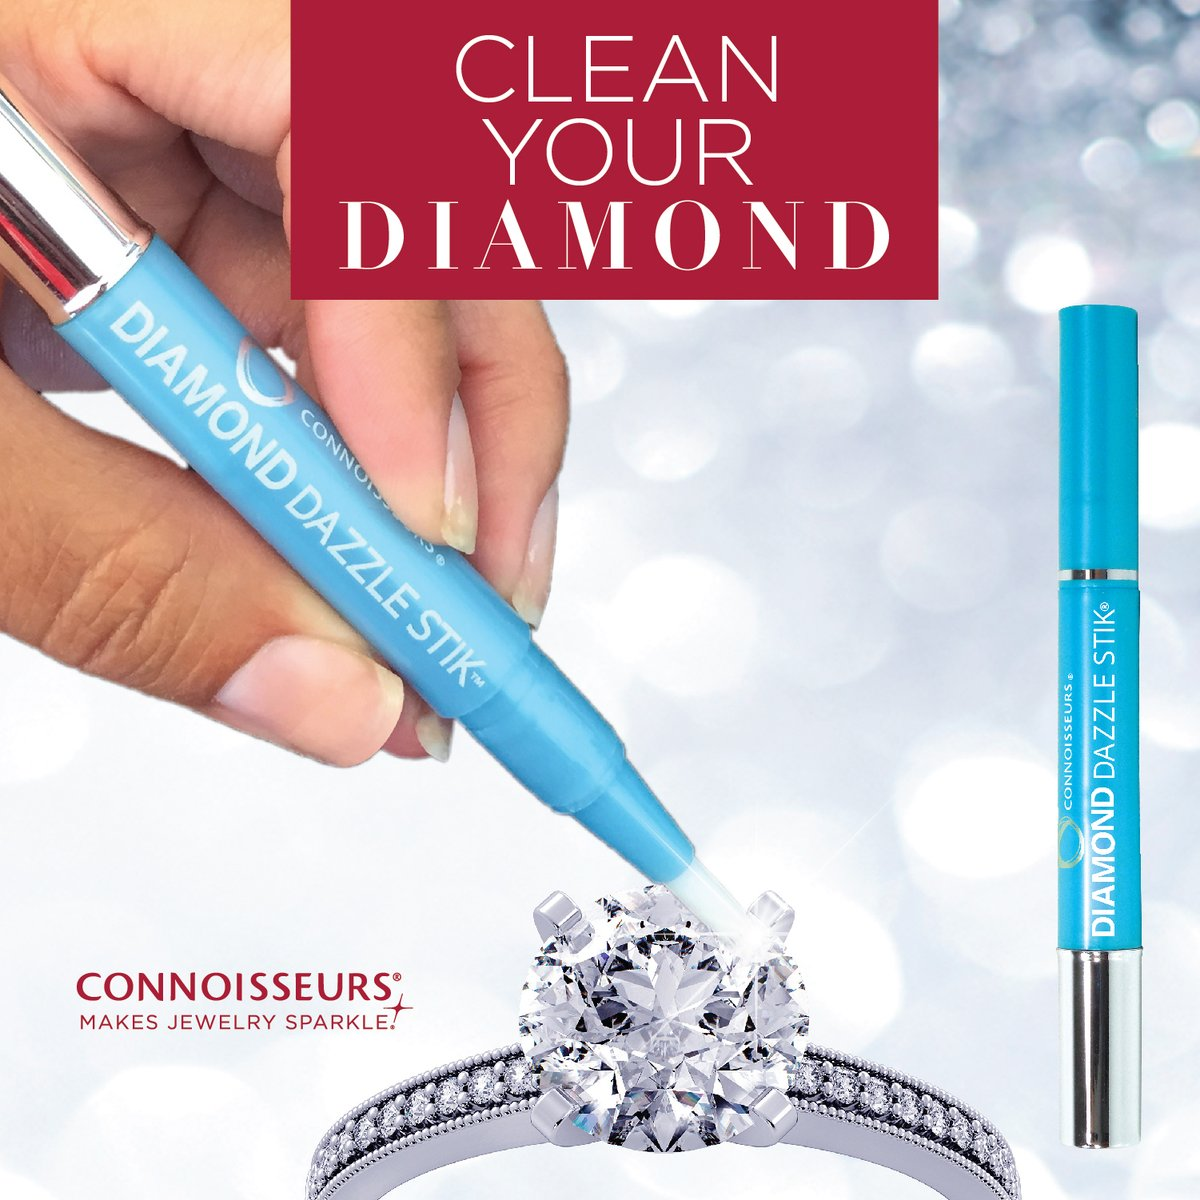 Make sure your diamond ring is Dazzle Stik clean #staysafe #cleanyourjewelry #connoisseurs #diamonddazzlestik #cleanyourdiamond #jewelrycleaner #onthegocleaner #diamondring #engagementring #engagementringcleanerpic.twitter.com/mg3Th7bLJA